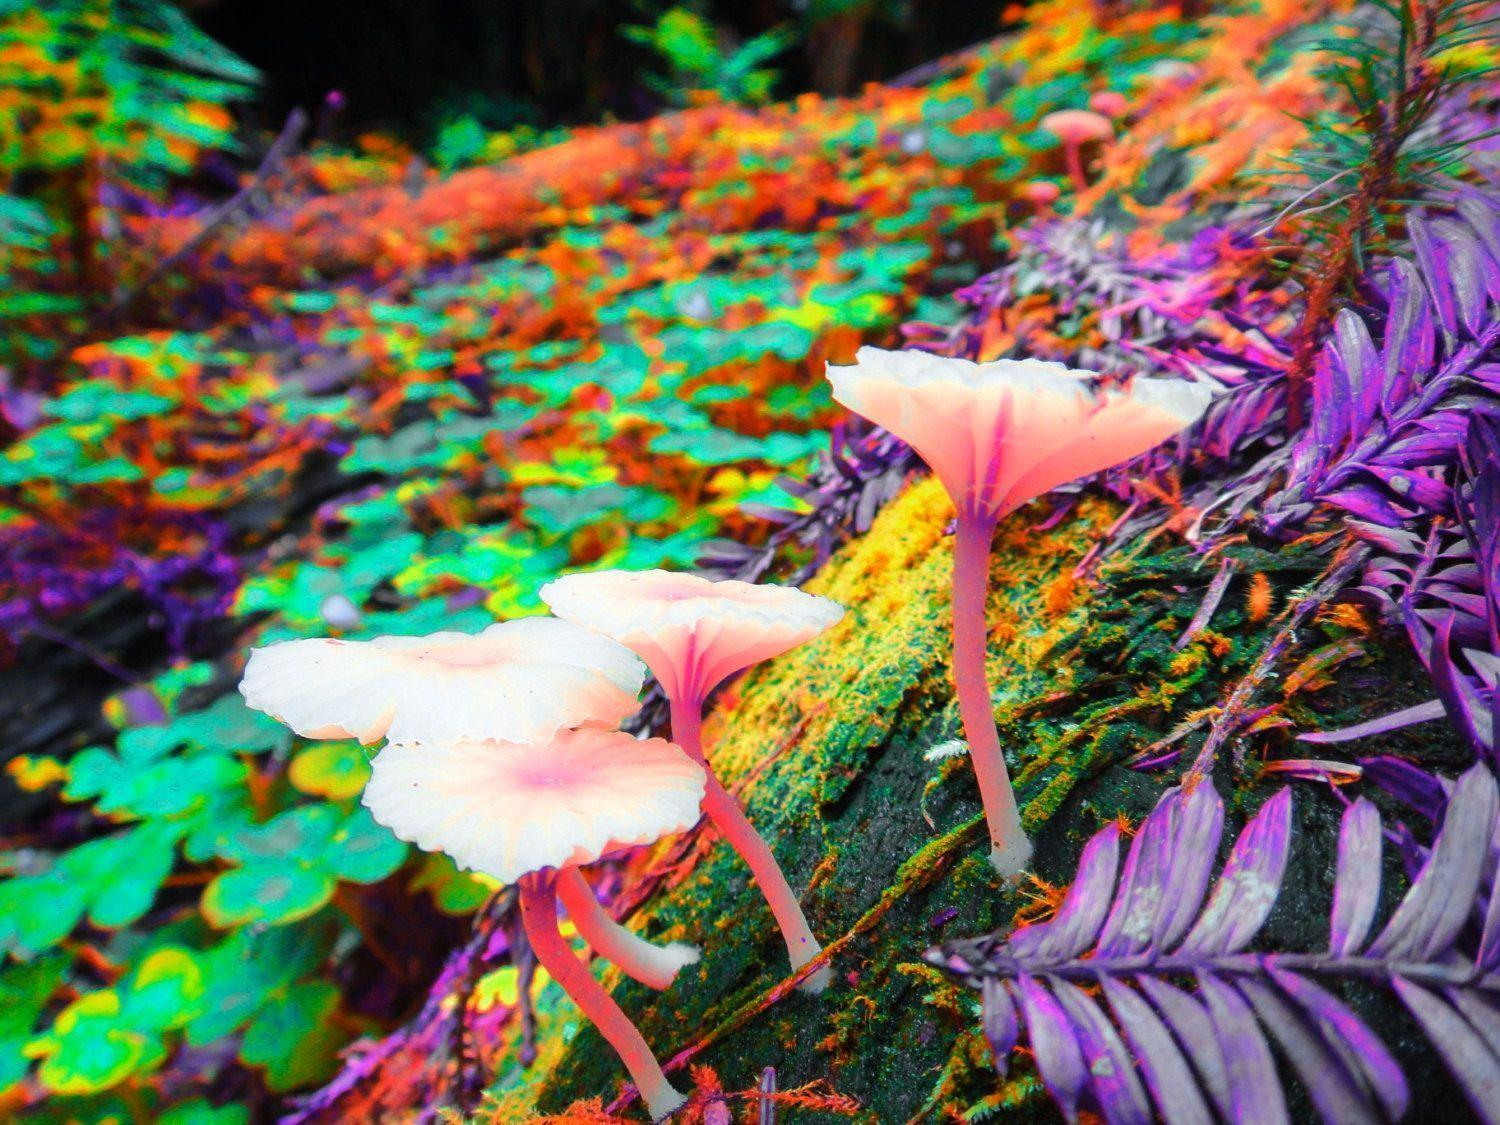 Trippy desktop wallpapers wallpaper cave - Trippy nature wallpaper ...